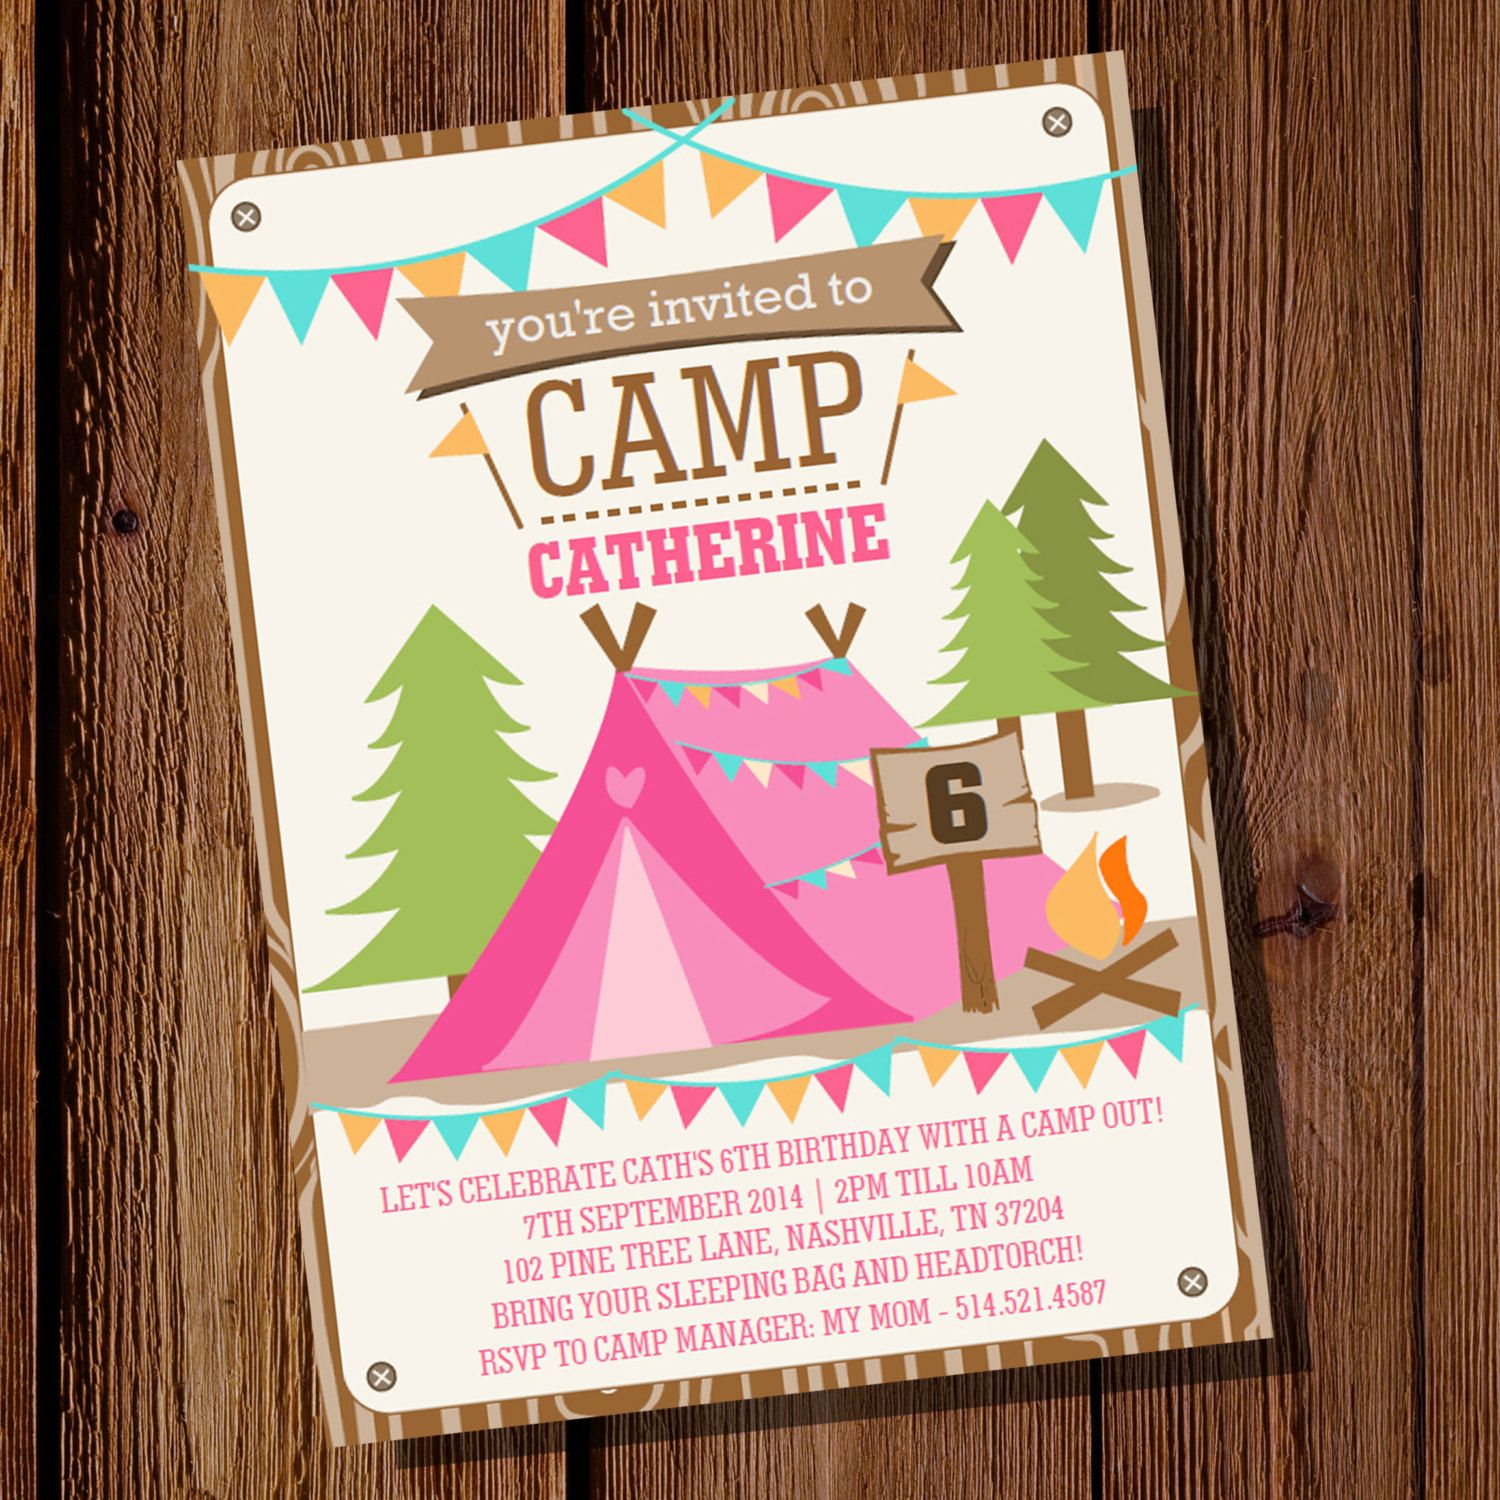 camping tent party invitation for a girl camp out glamping